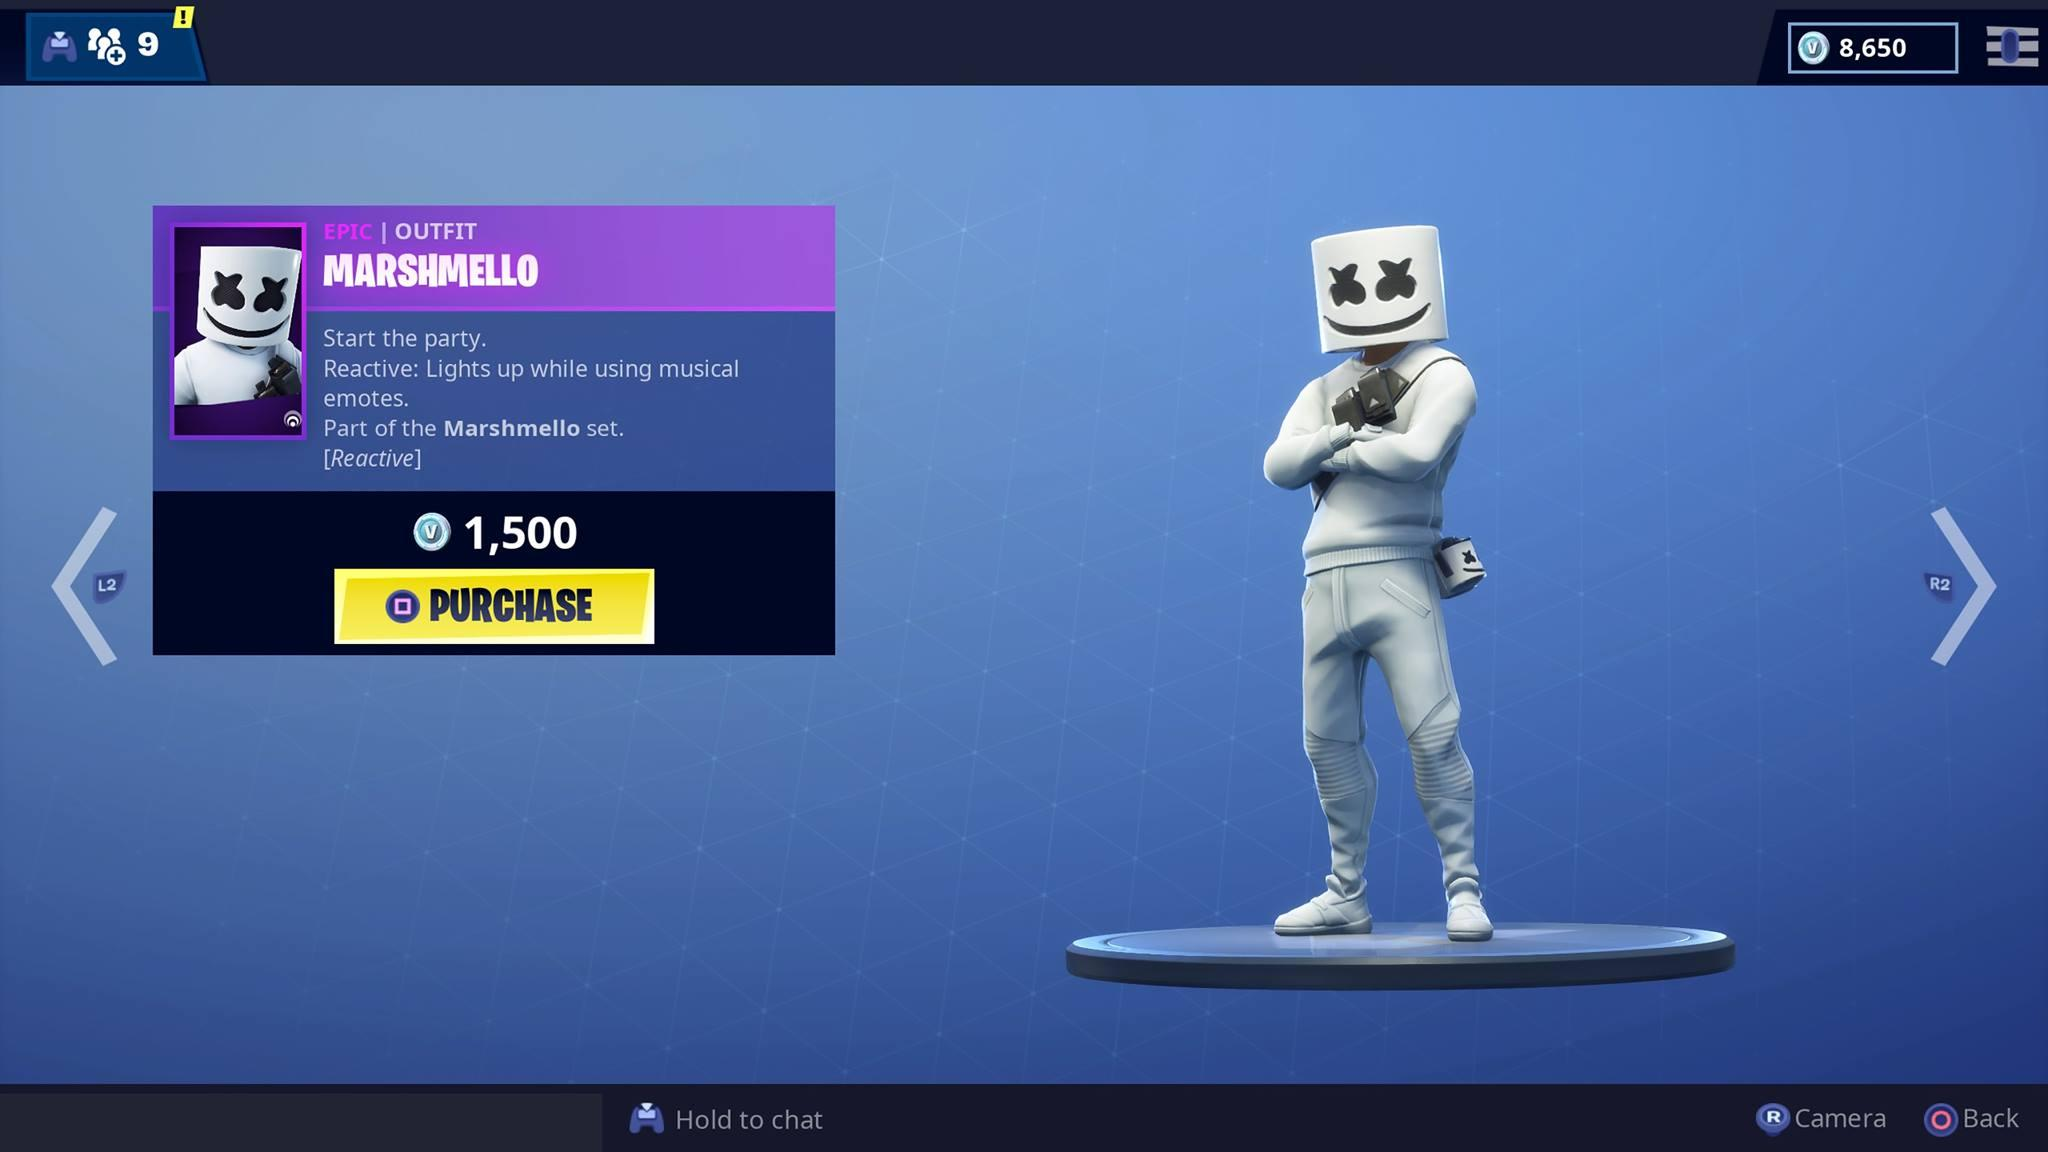 Marshmello Skin Is Now Available For Fortnite Video Game